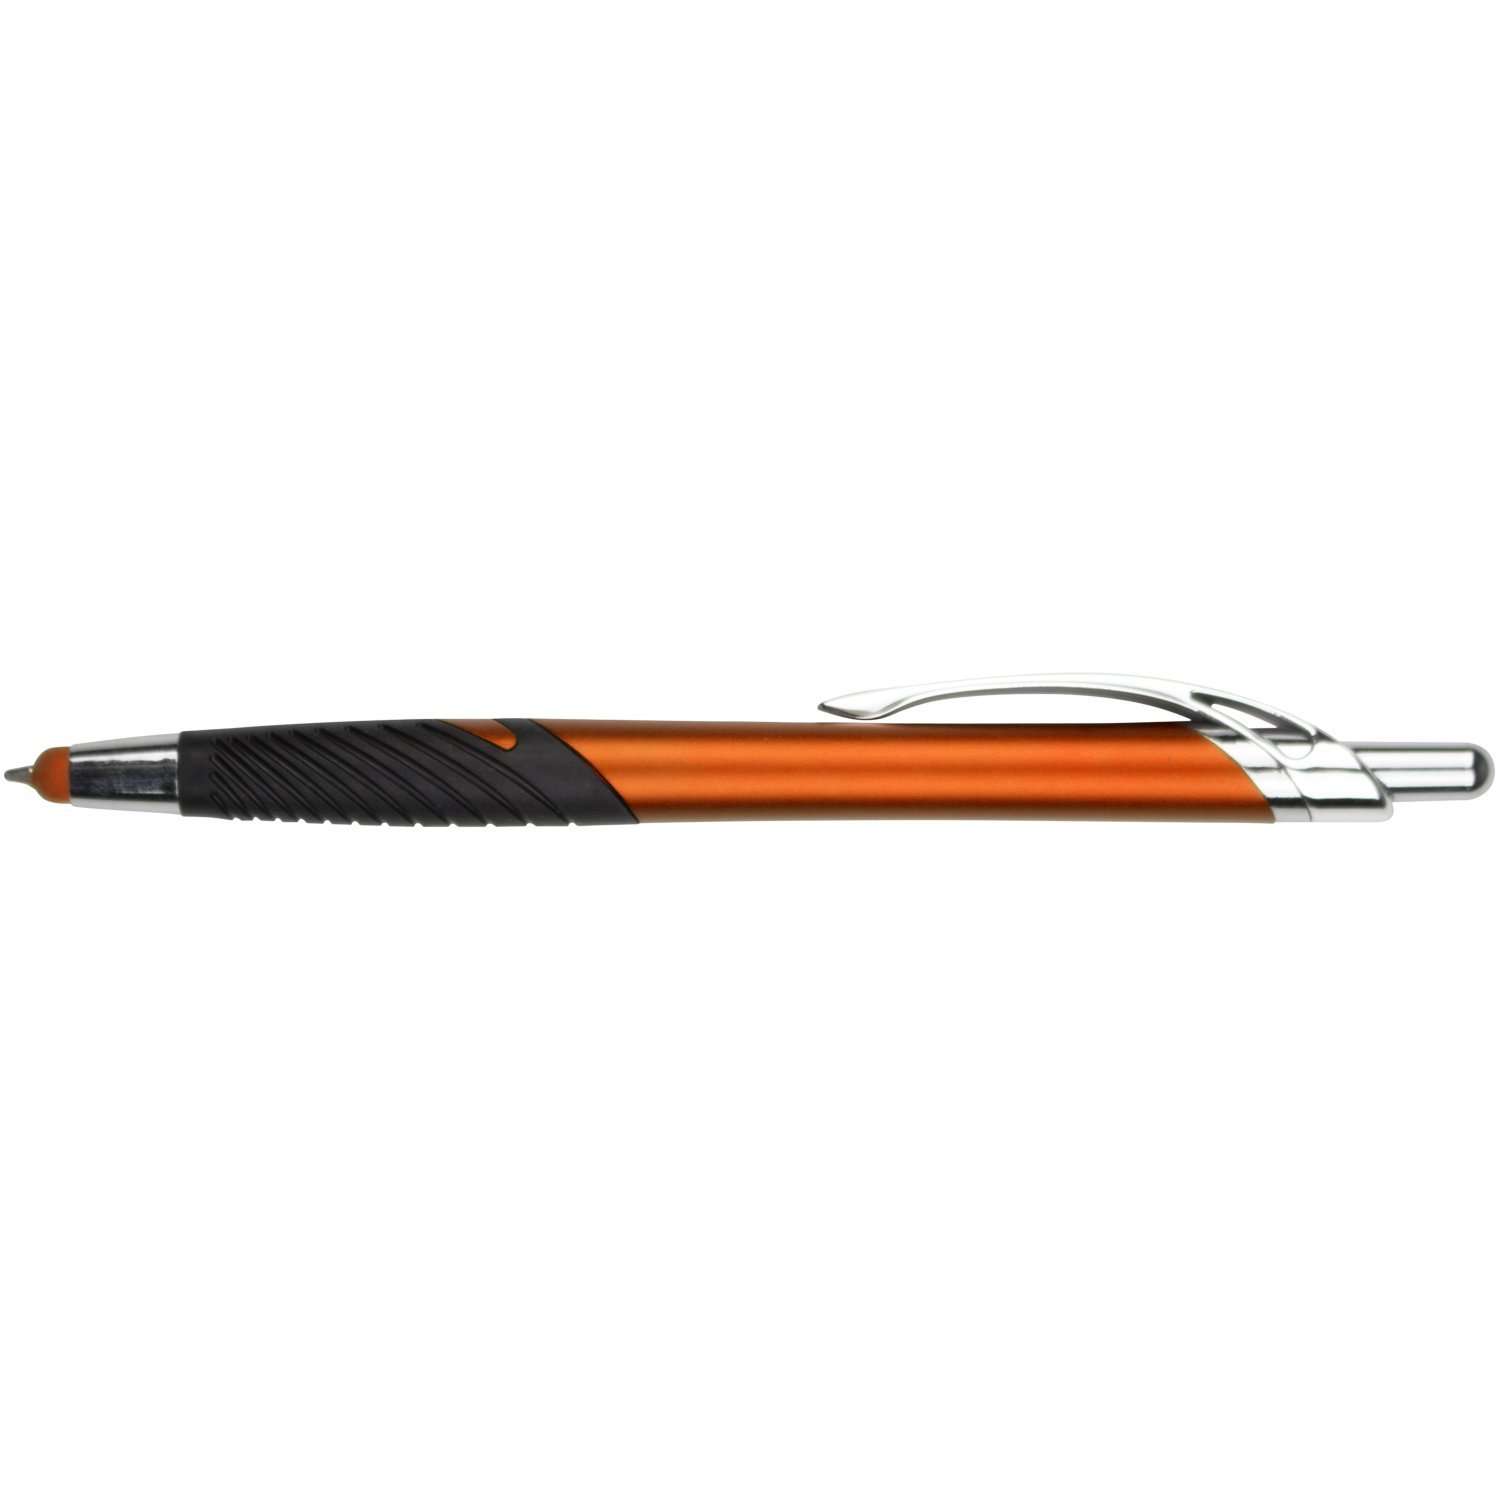 LEGACY - Metallic Stylus Pen with Gripper 2 in 1 Stylus Capacitive Touch Screen Ballpoint pen for iPhone 6/7 8 plus 5S 5 4S Samsung Galaxy S8 S7 S6 S5 HTC All Touch Screen Devices (Orange, 500)